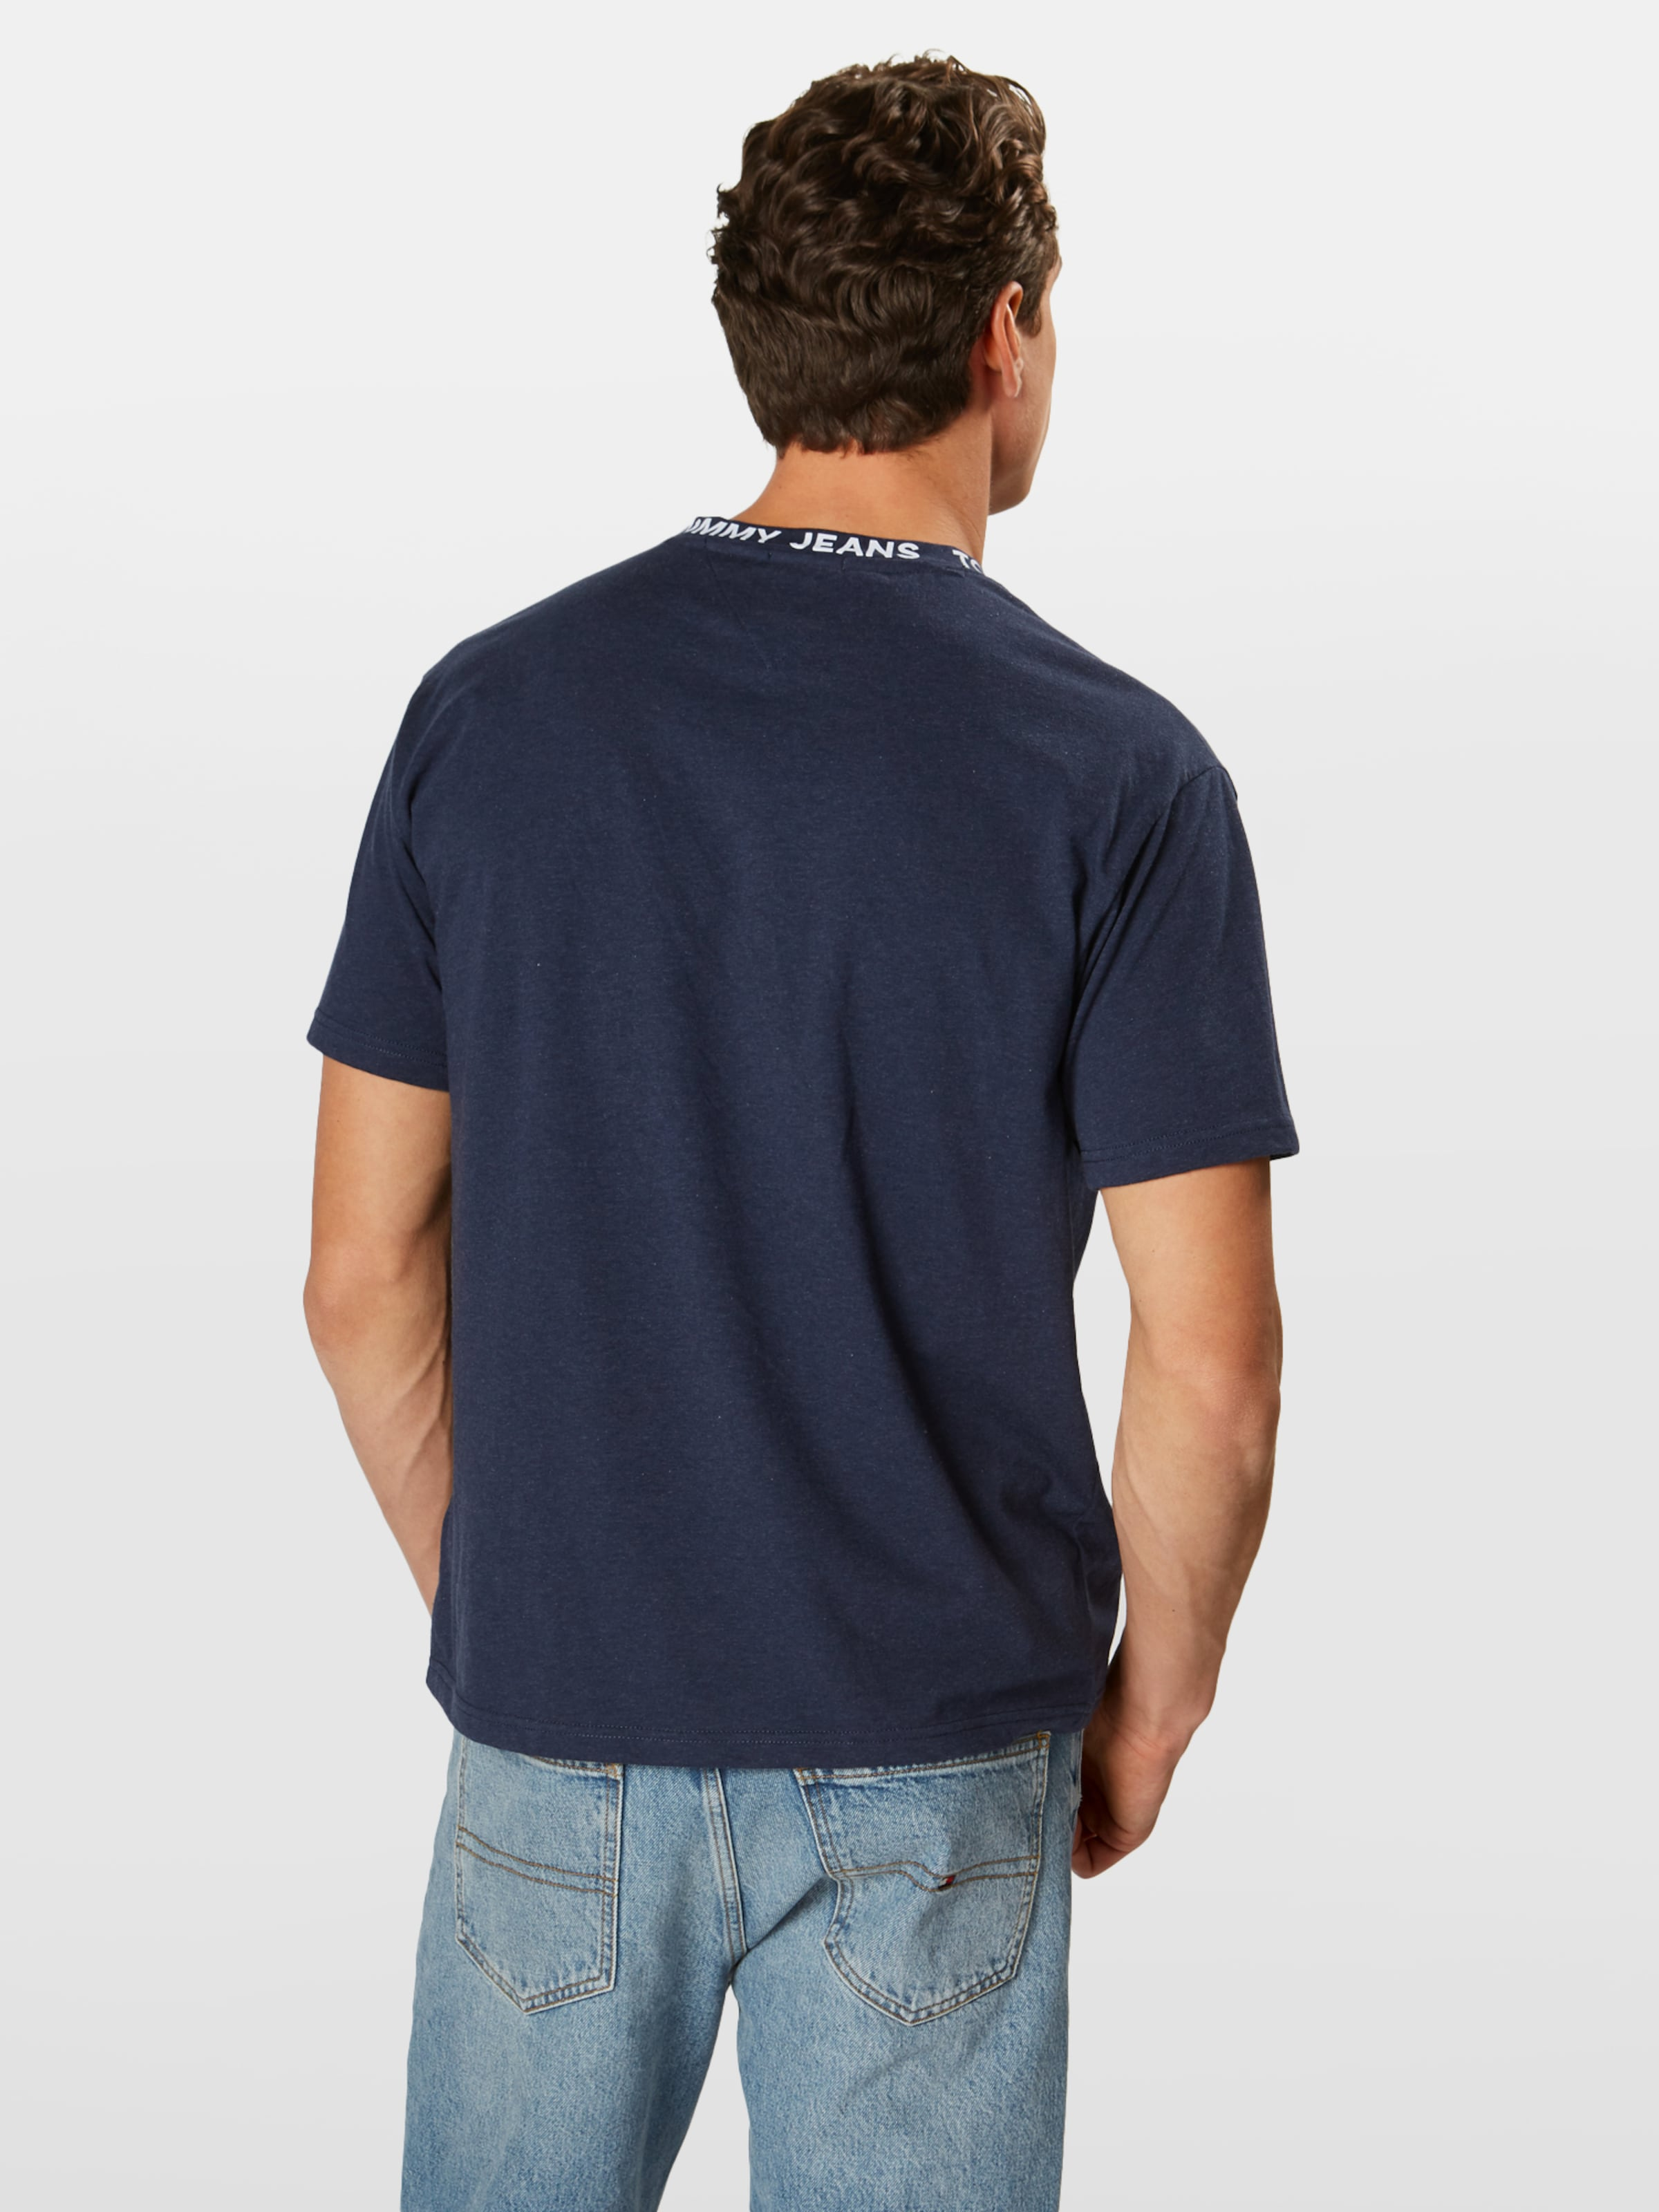 Shirt In 'heather Collar Jeans Donkerblauw Tommy Tee' Branded Yyf7gb6